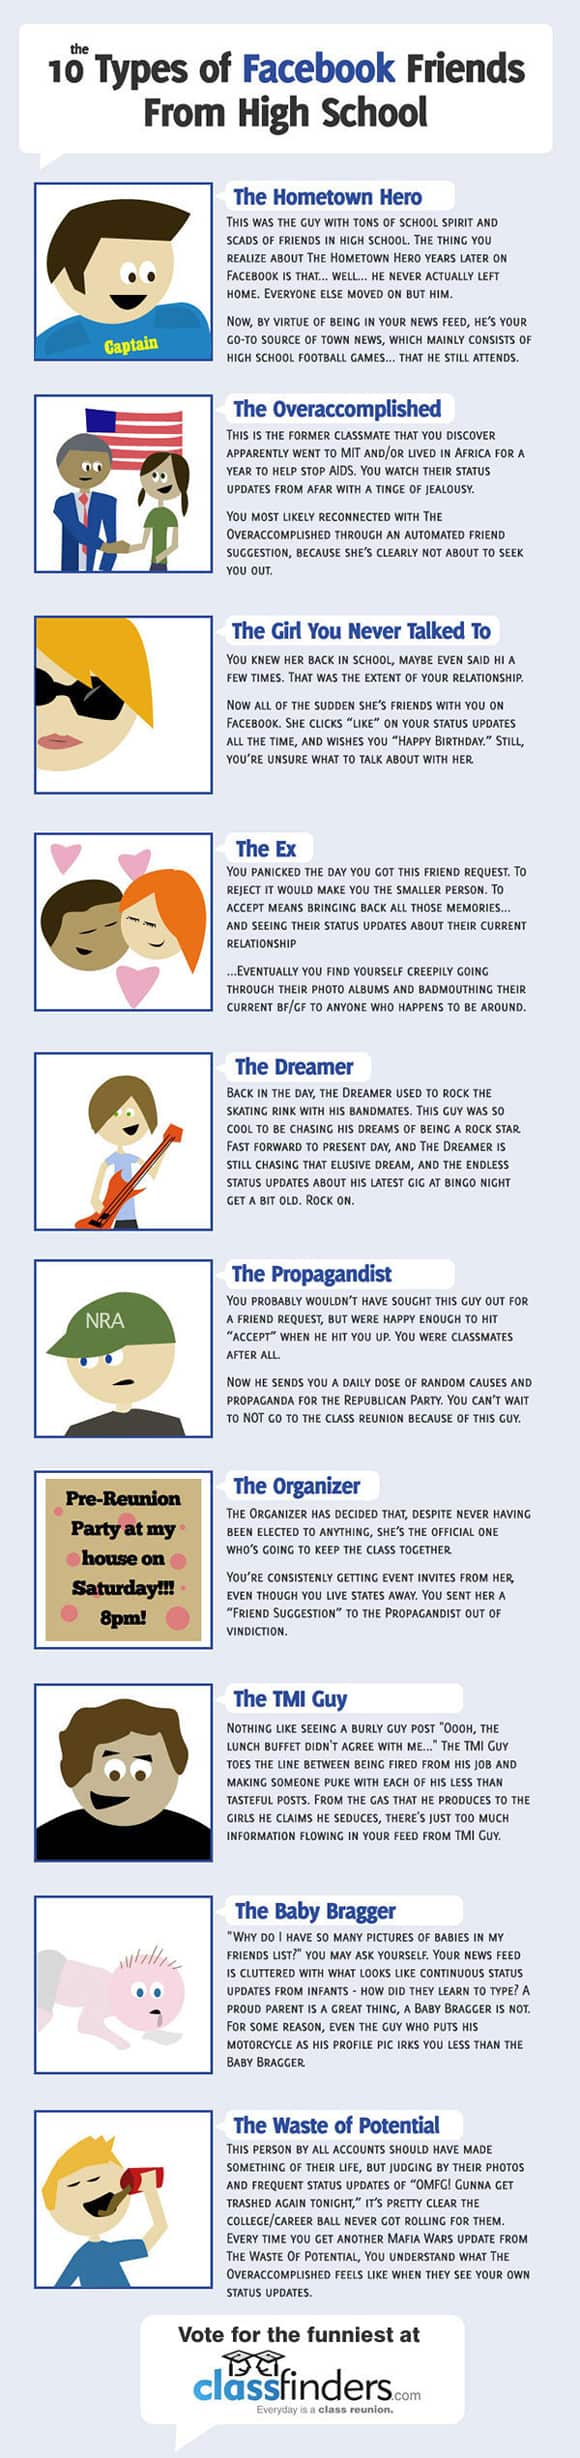 the types of facebook friends 10 Types of Facebook Friends [Infographic]